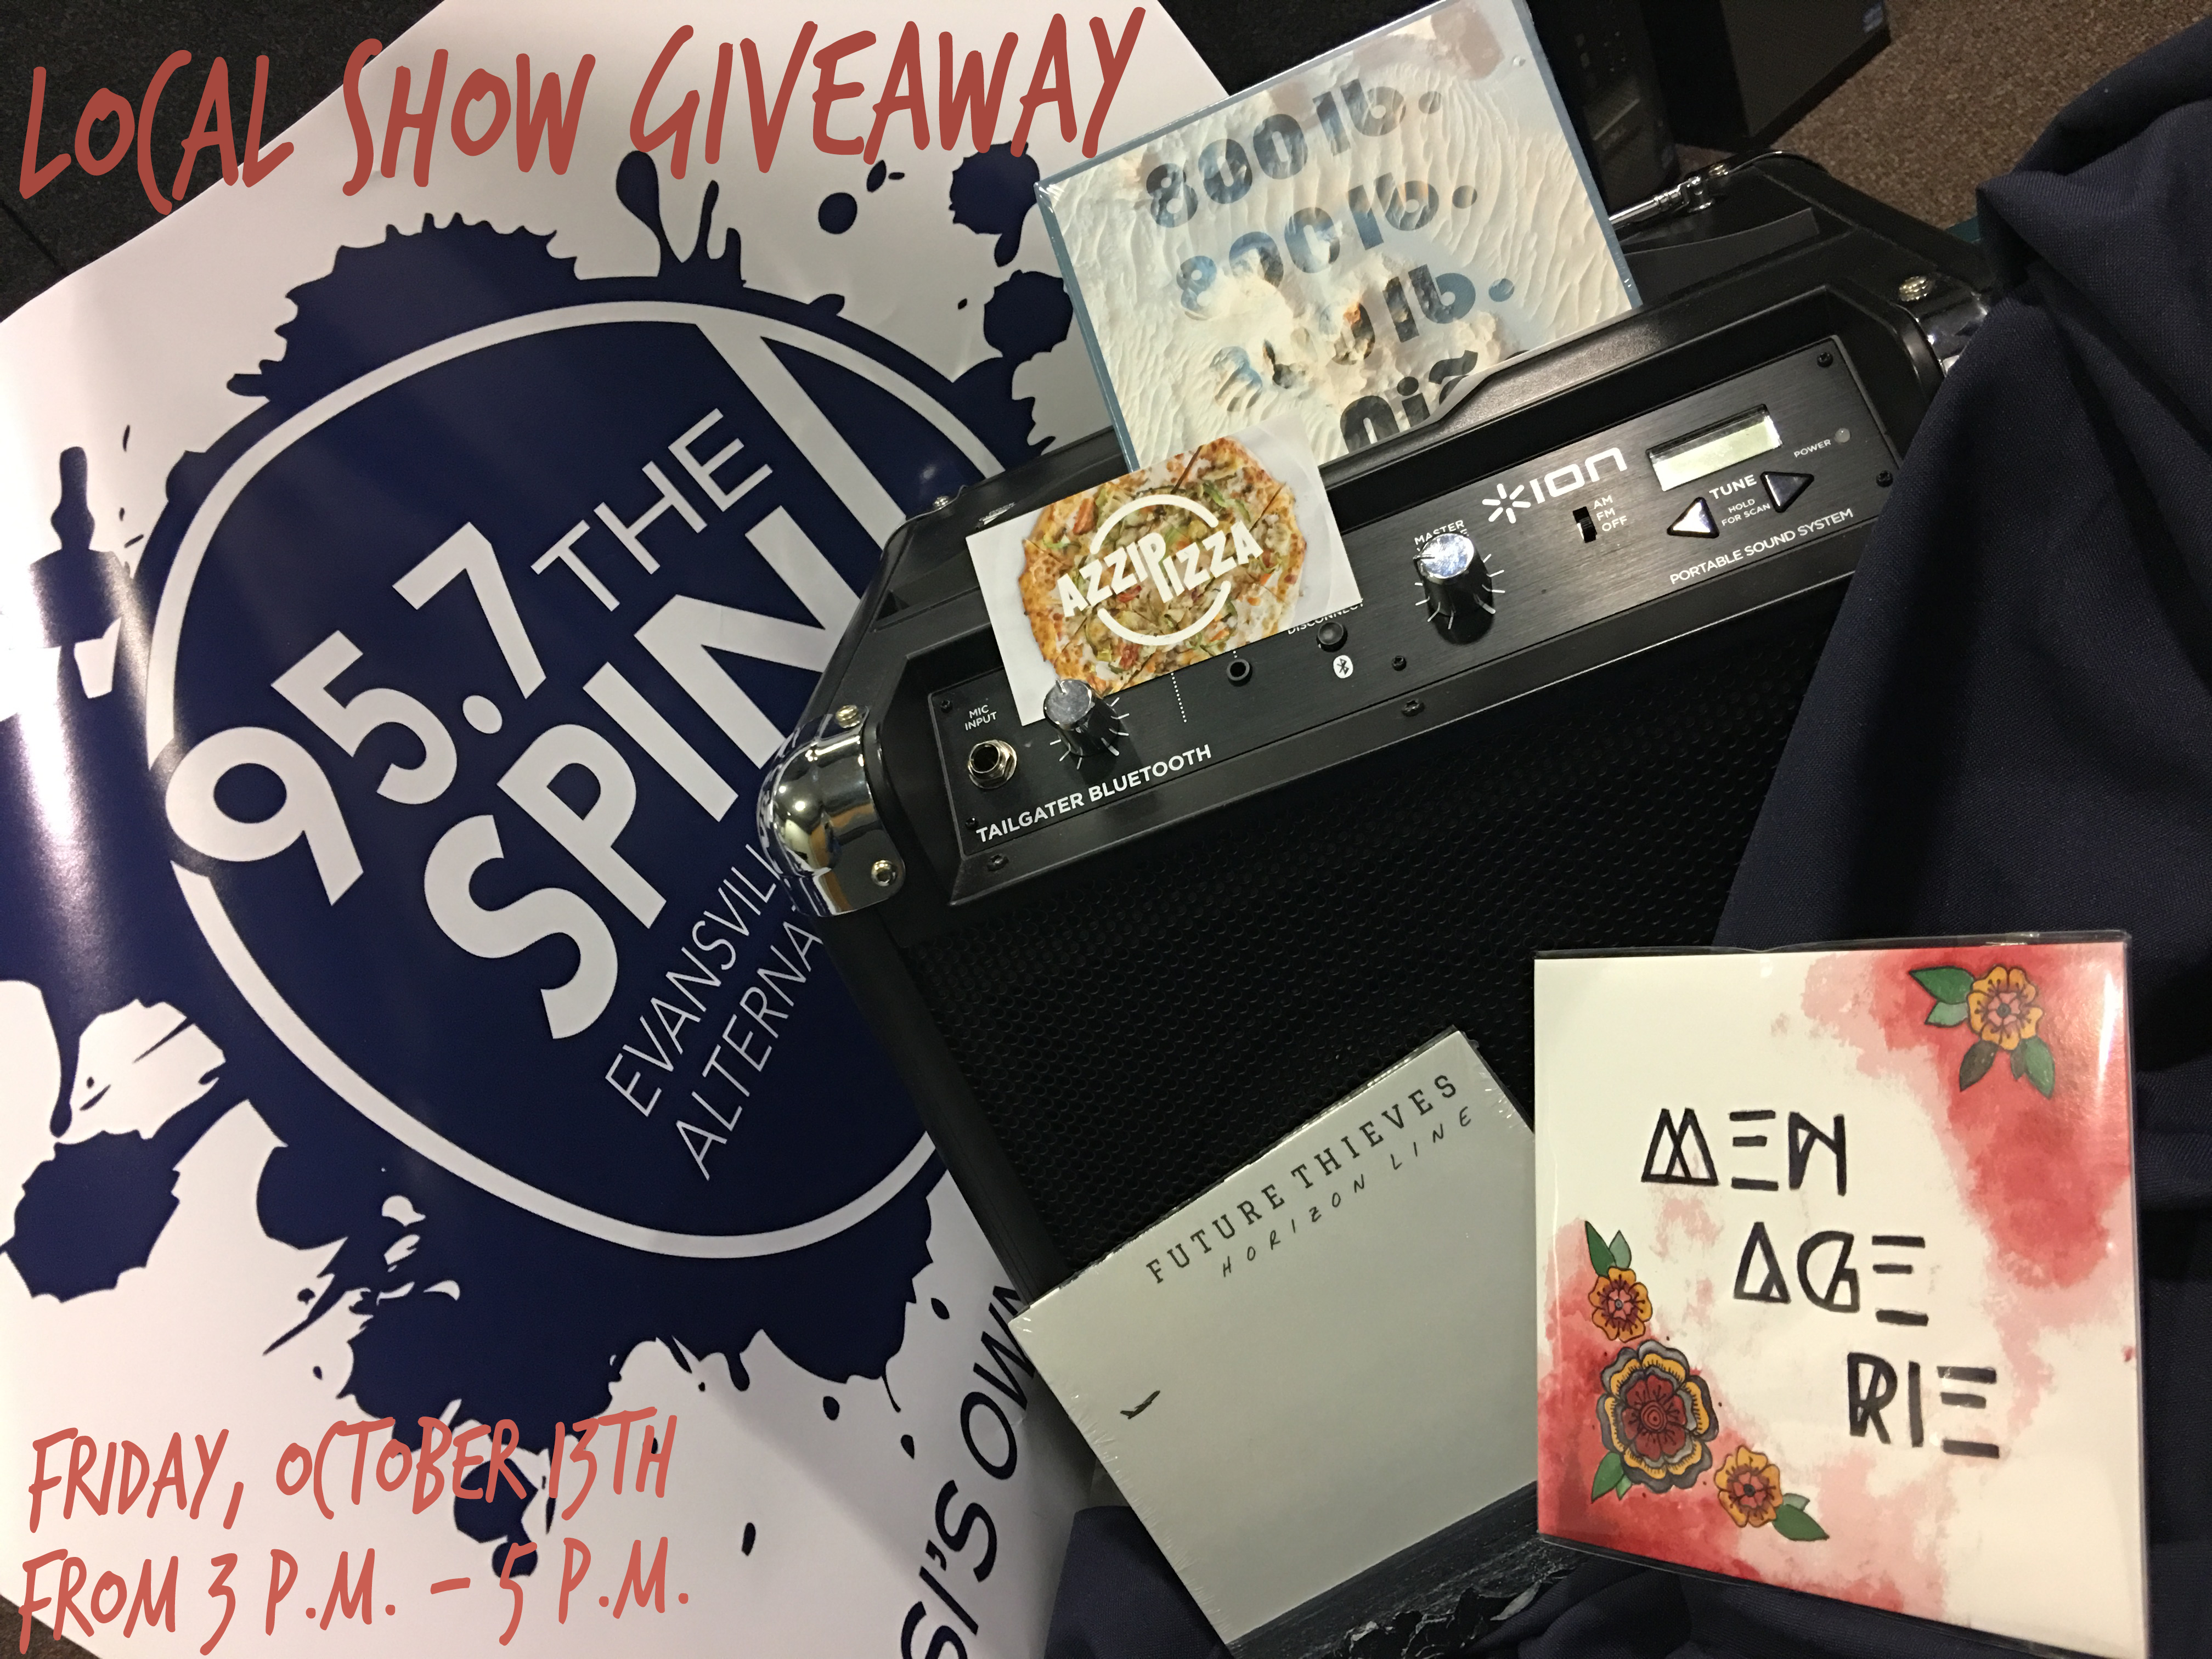 local show giveaway 10.13